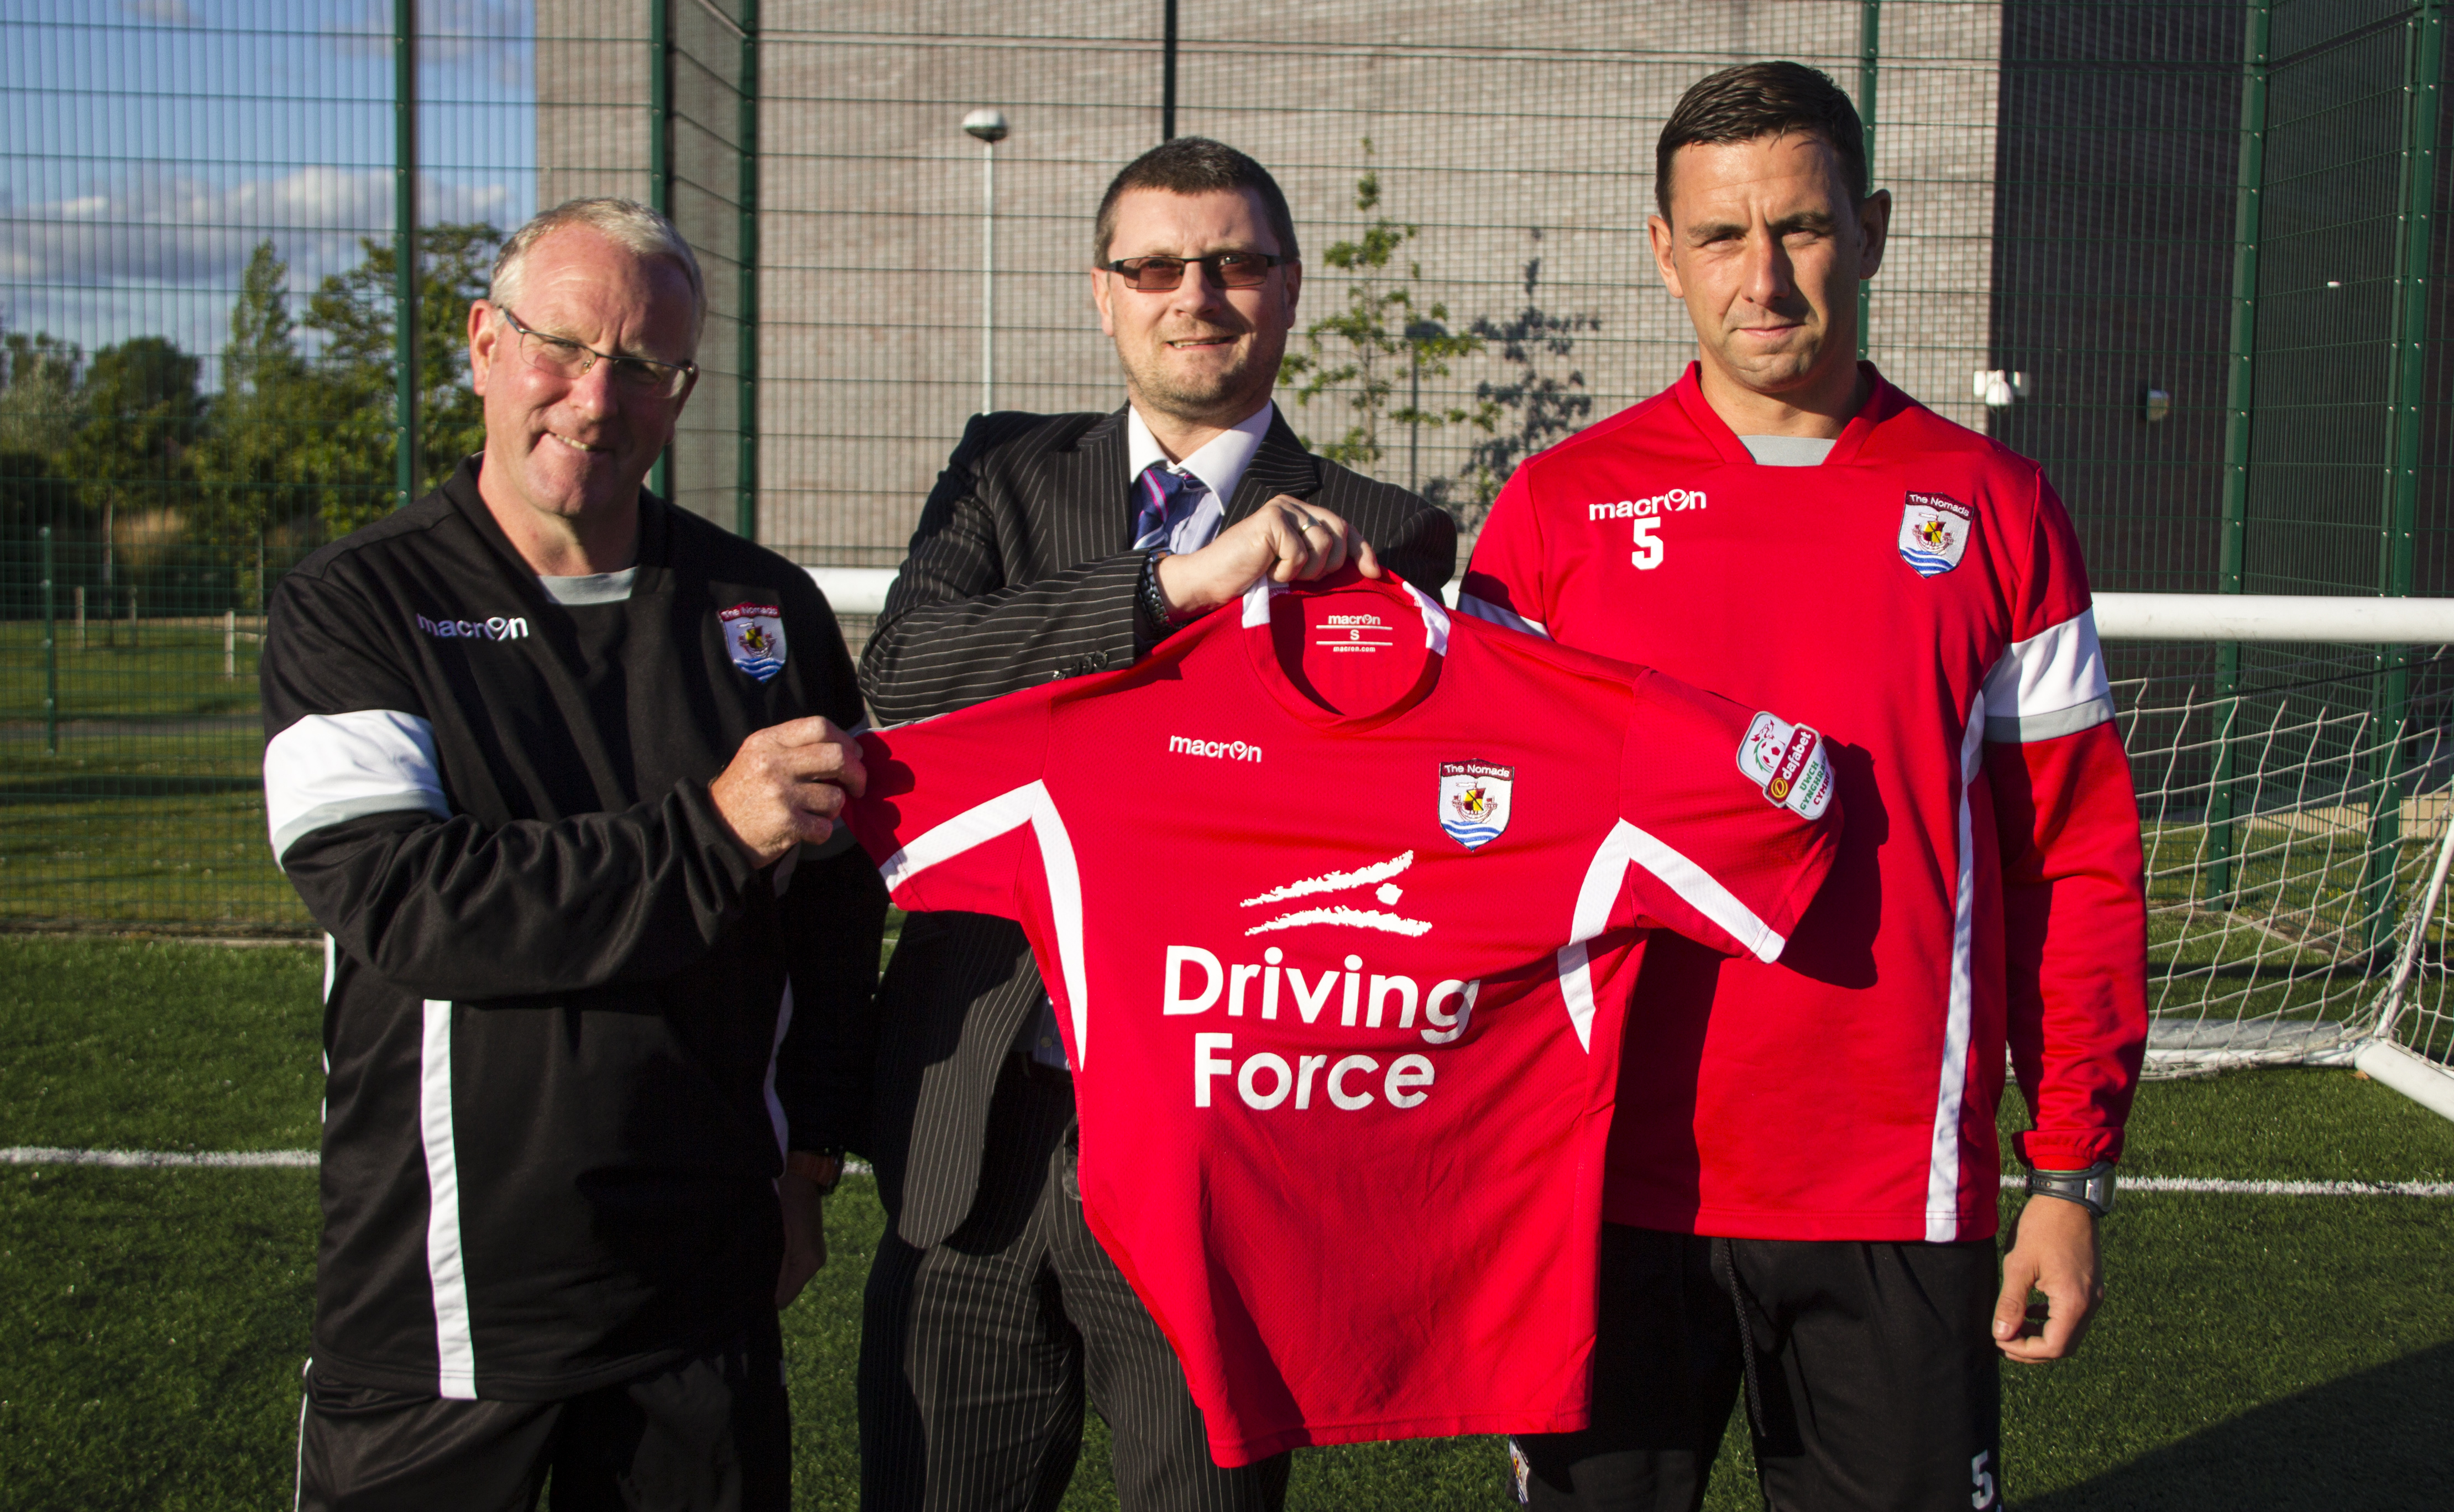 New sponsorship deal drives The Nomads into new season